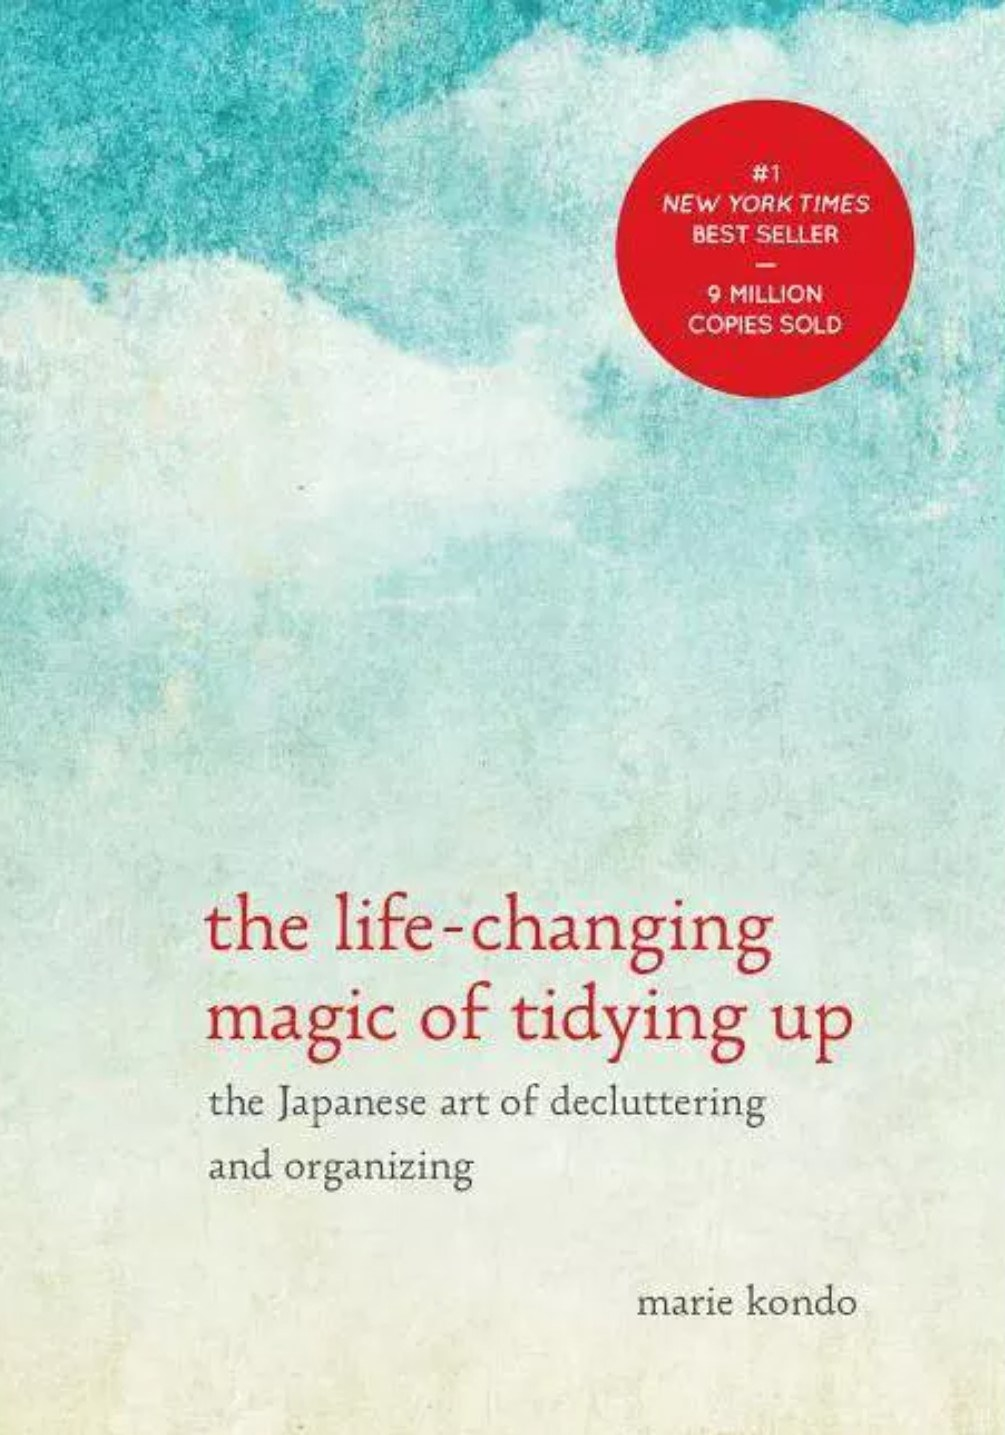 The cover of The Life-Changing Magic Of Tidying Up by Marie Kondo